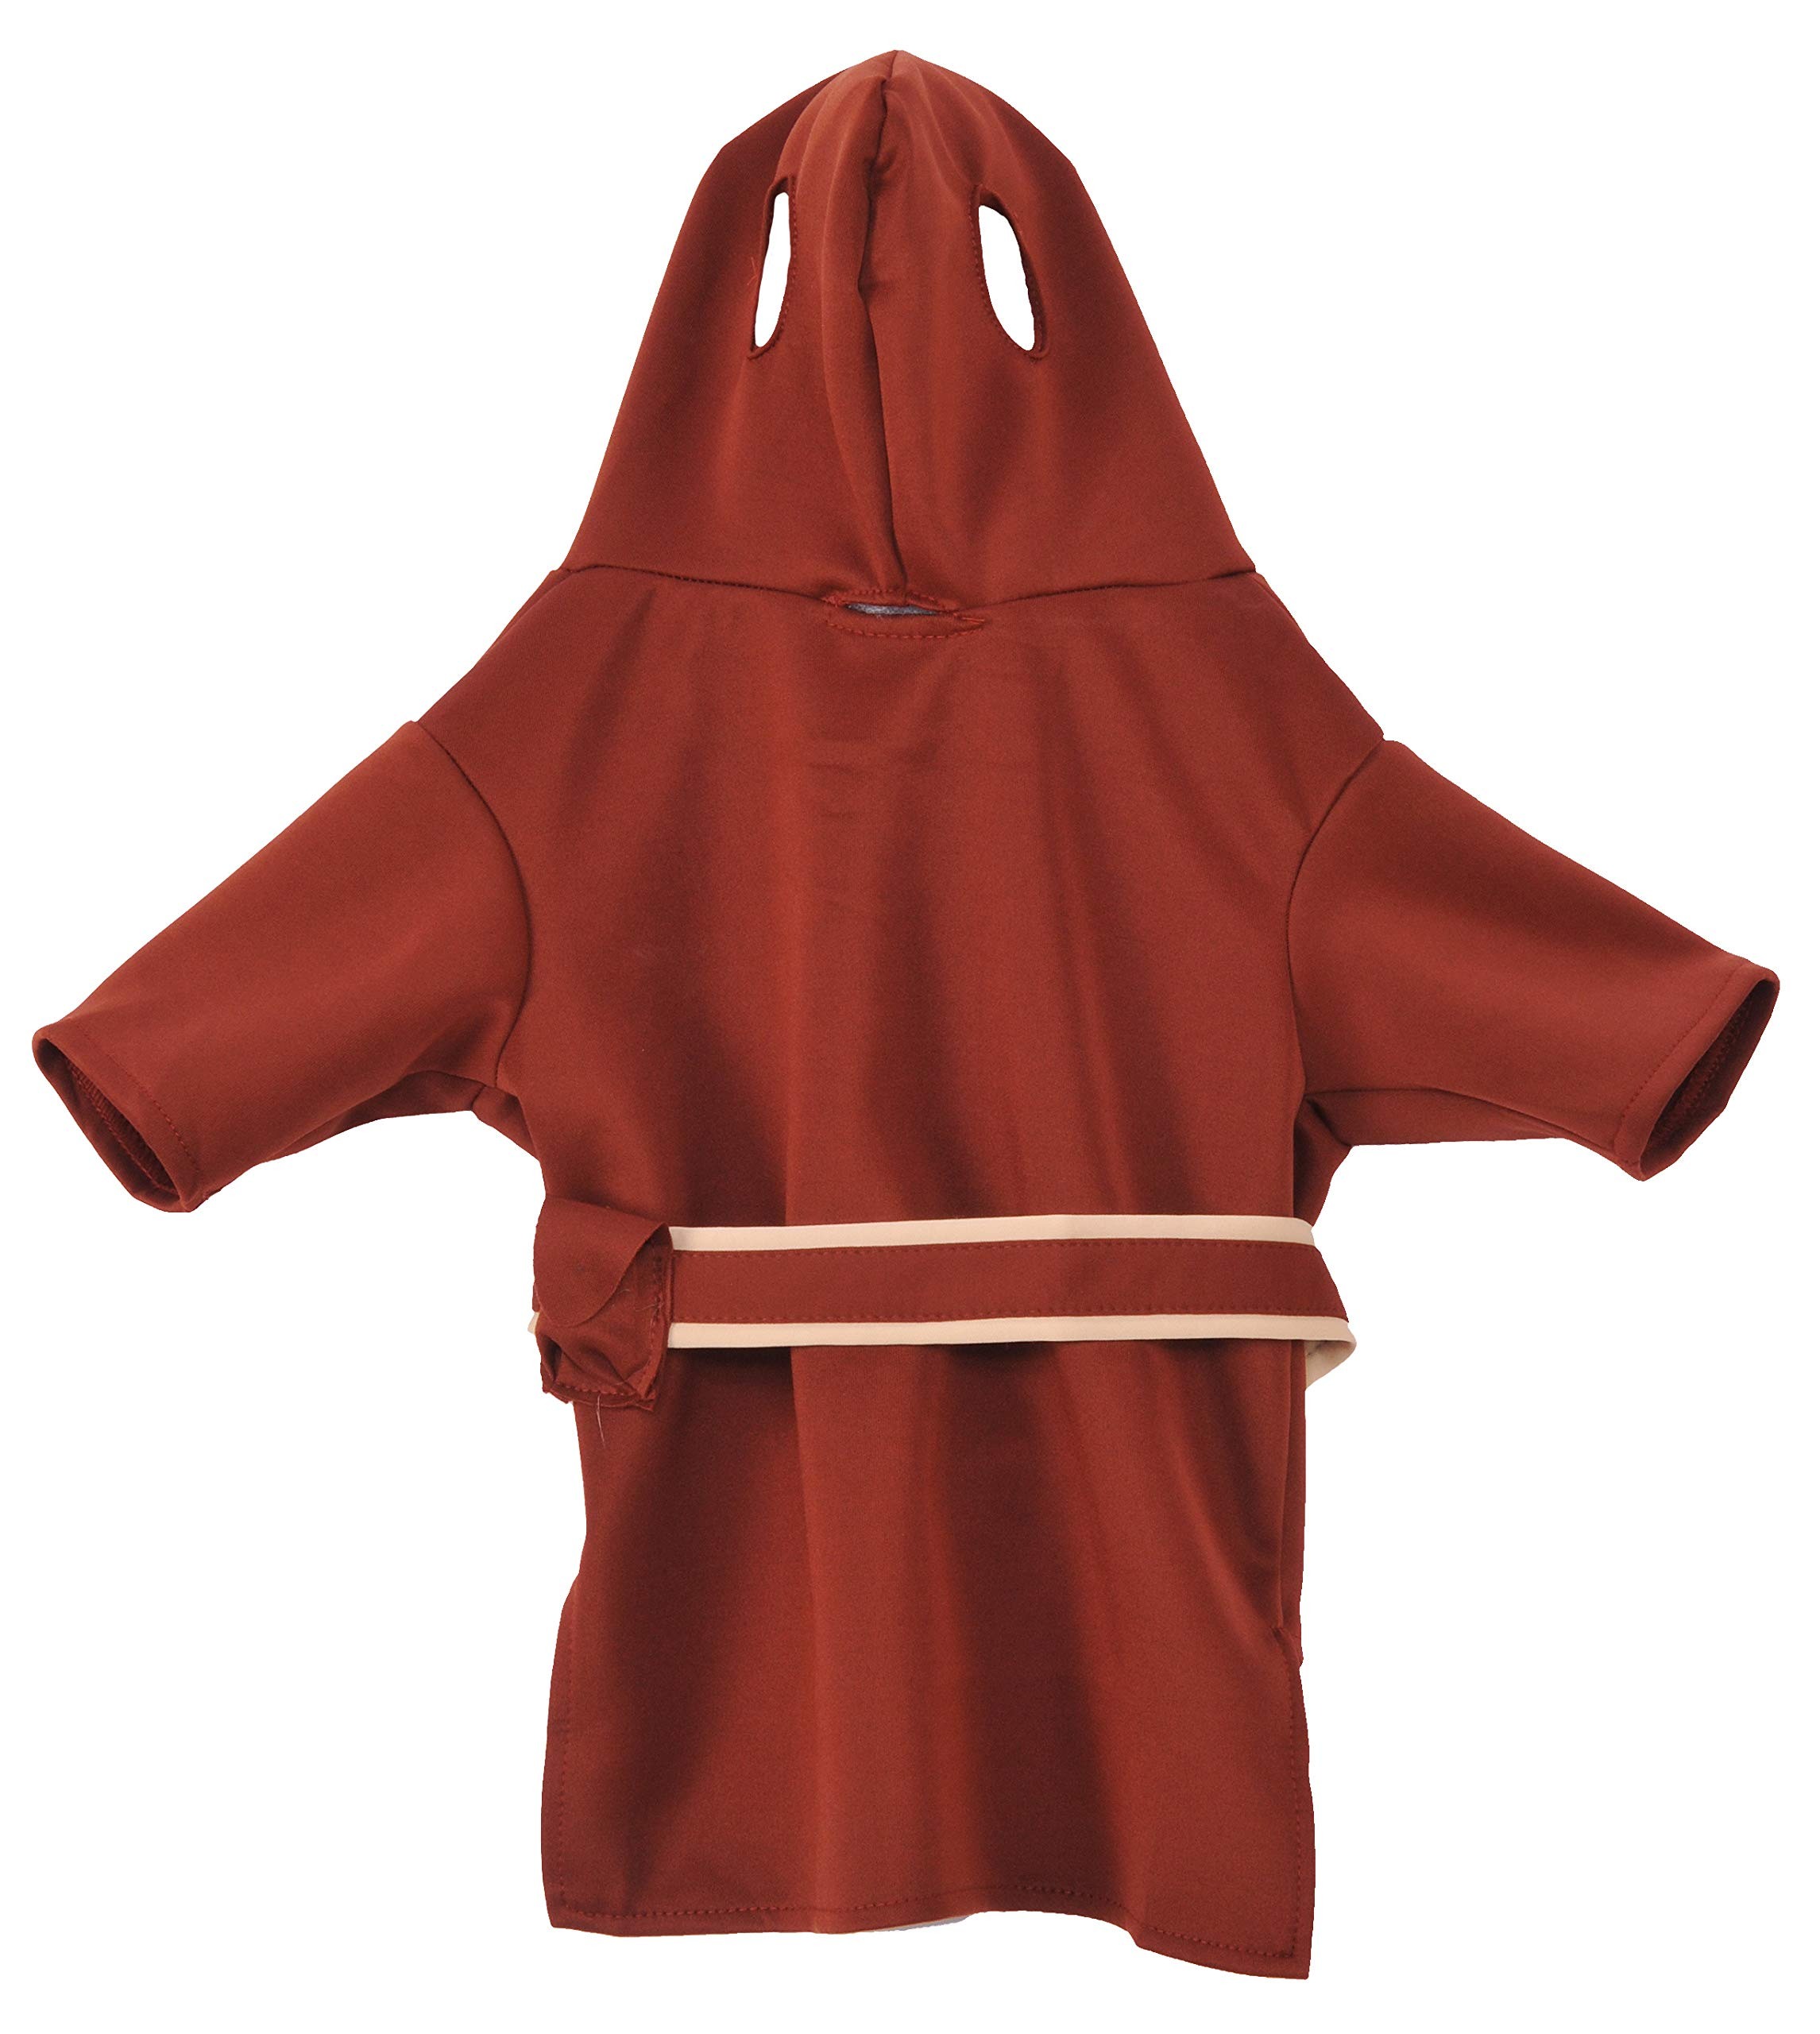 Rubie's Star Wars Classic Jedi Robe Pet Costume, Large by Rubie's (Image #3)